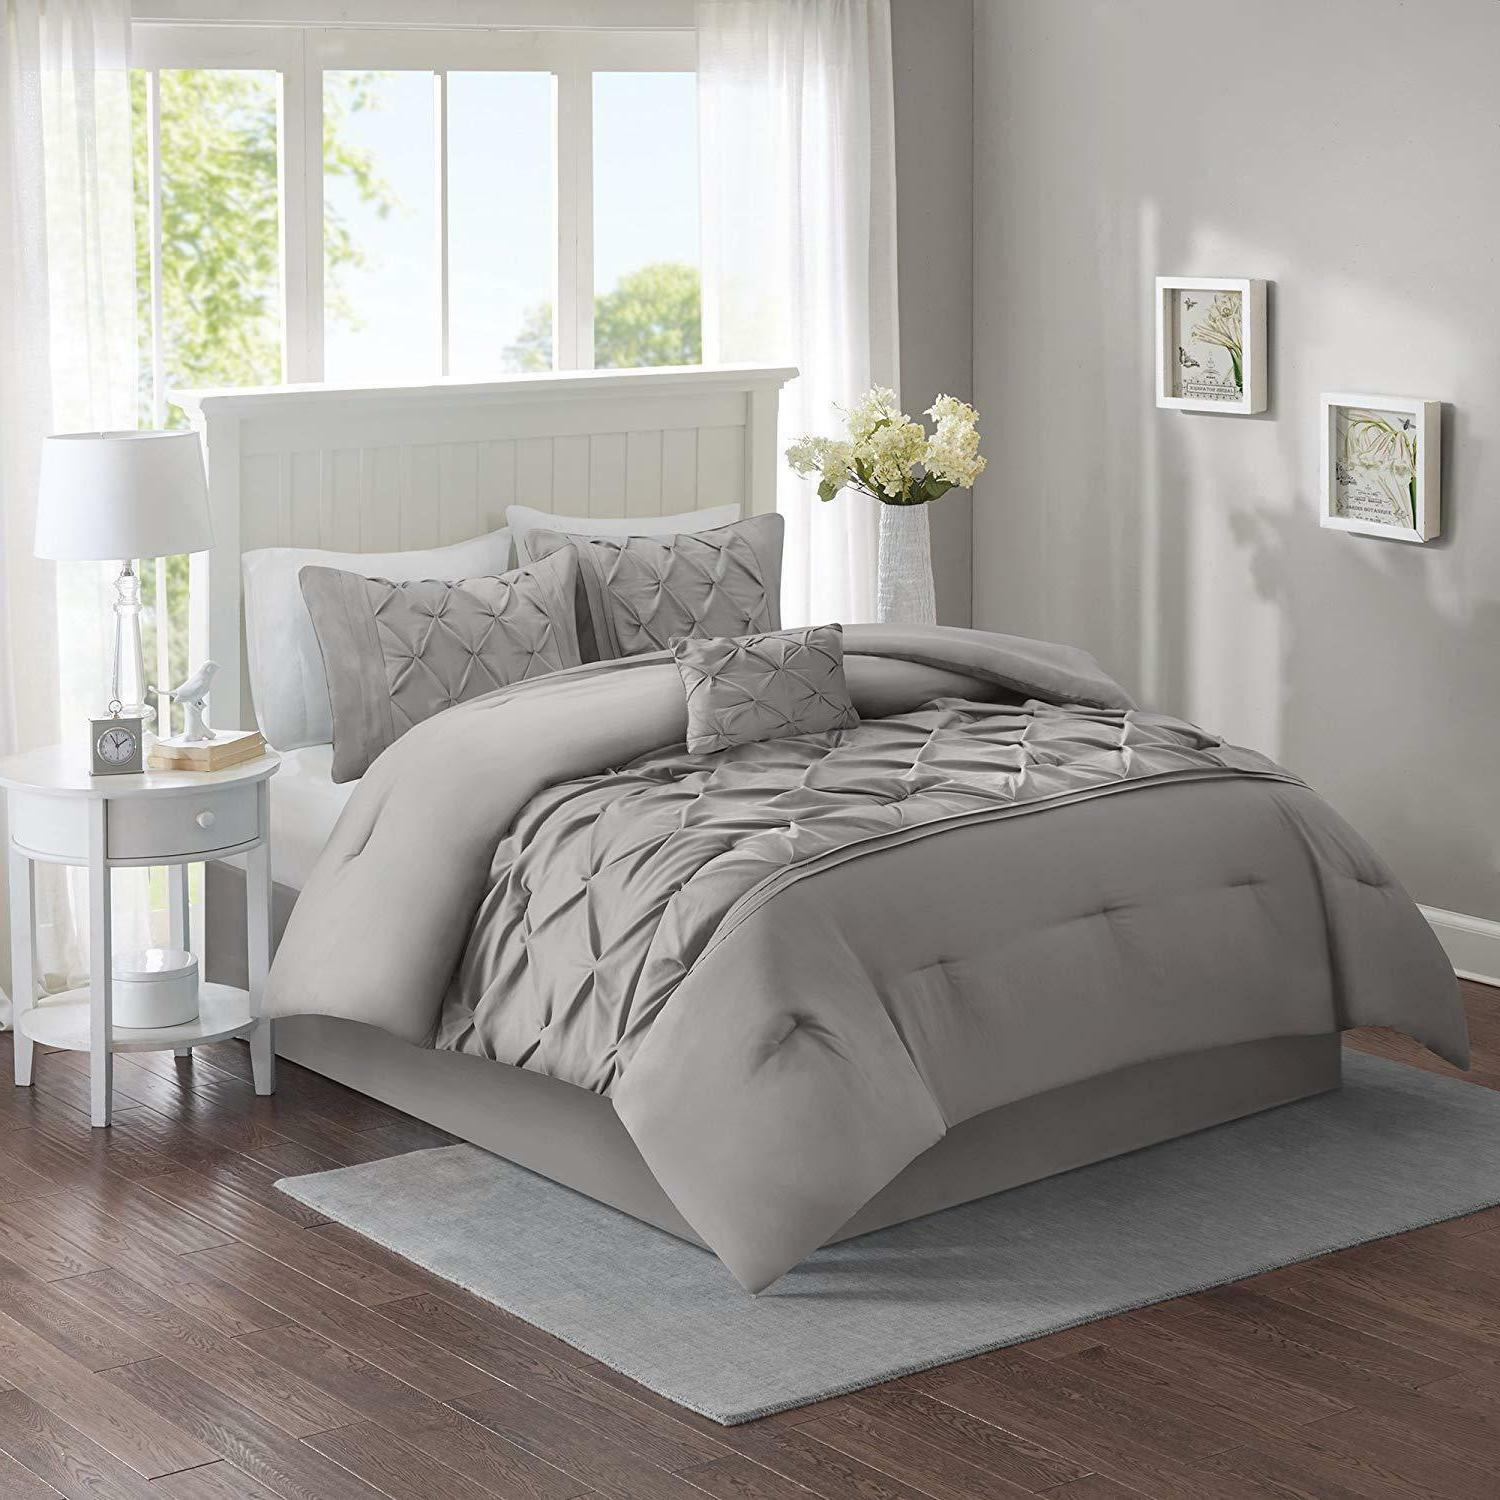 Bed A Bag Tufted Pattern Bedding Grey 5 Piece